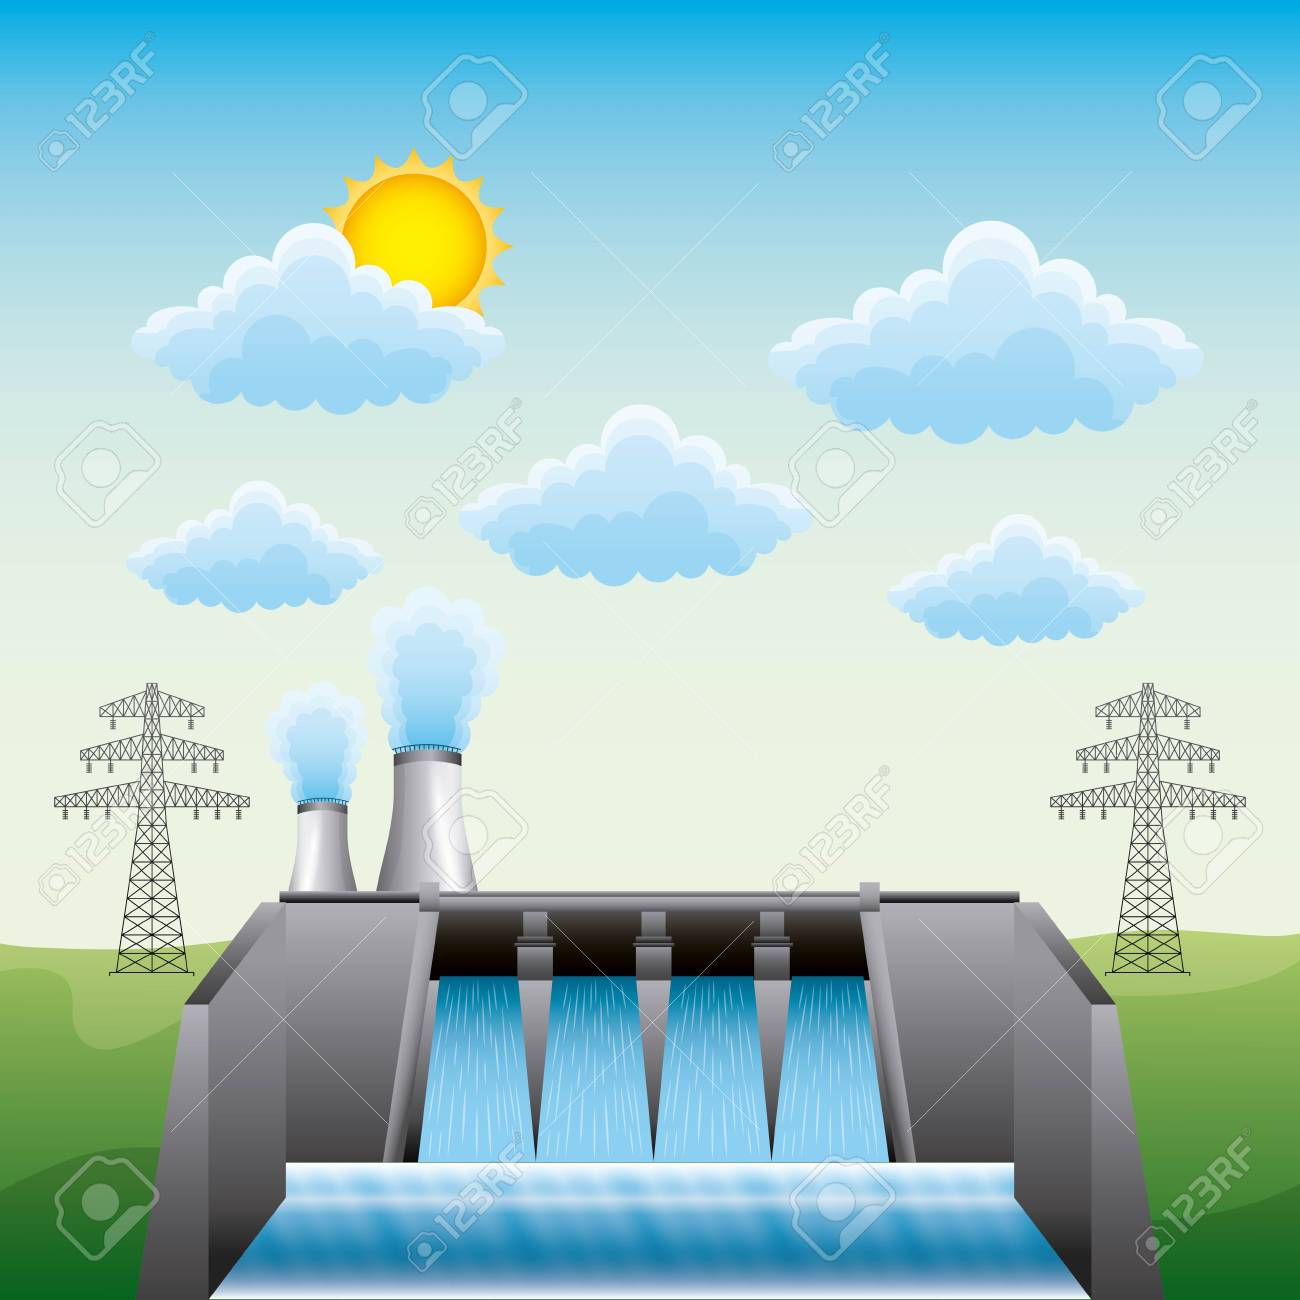 Hydroelectric dam nuclear plant and electric pylon - renewable energy vector illustration - 96899378